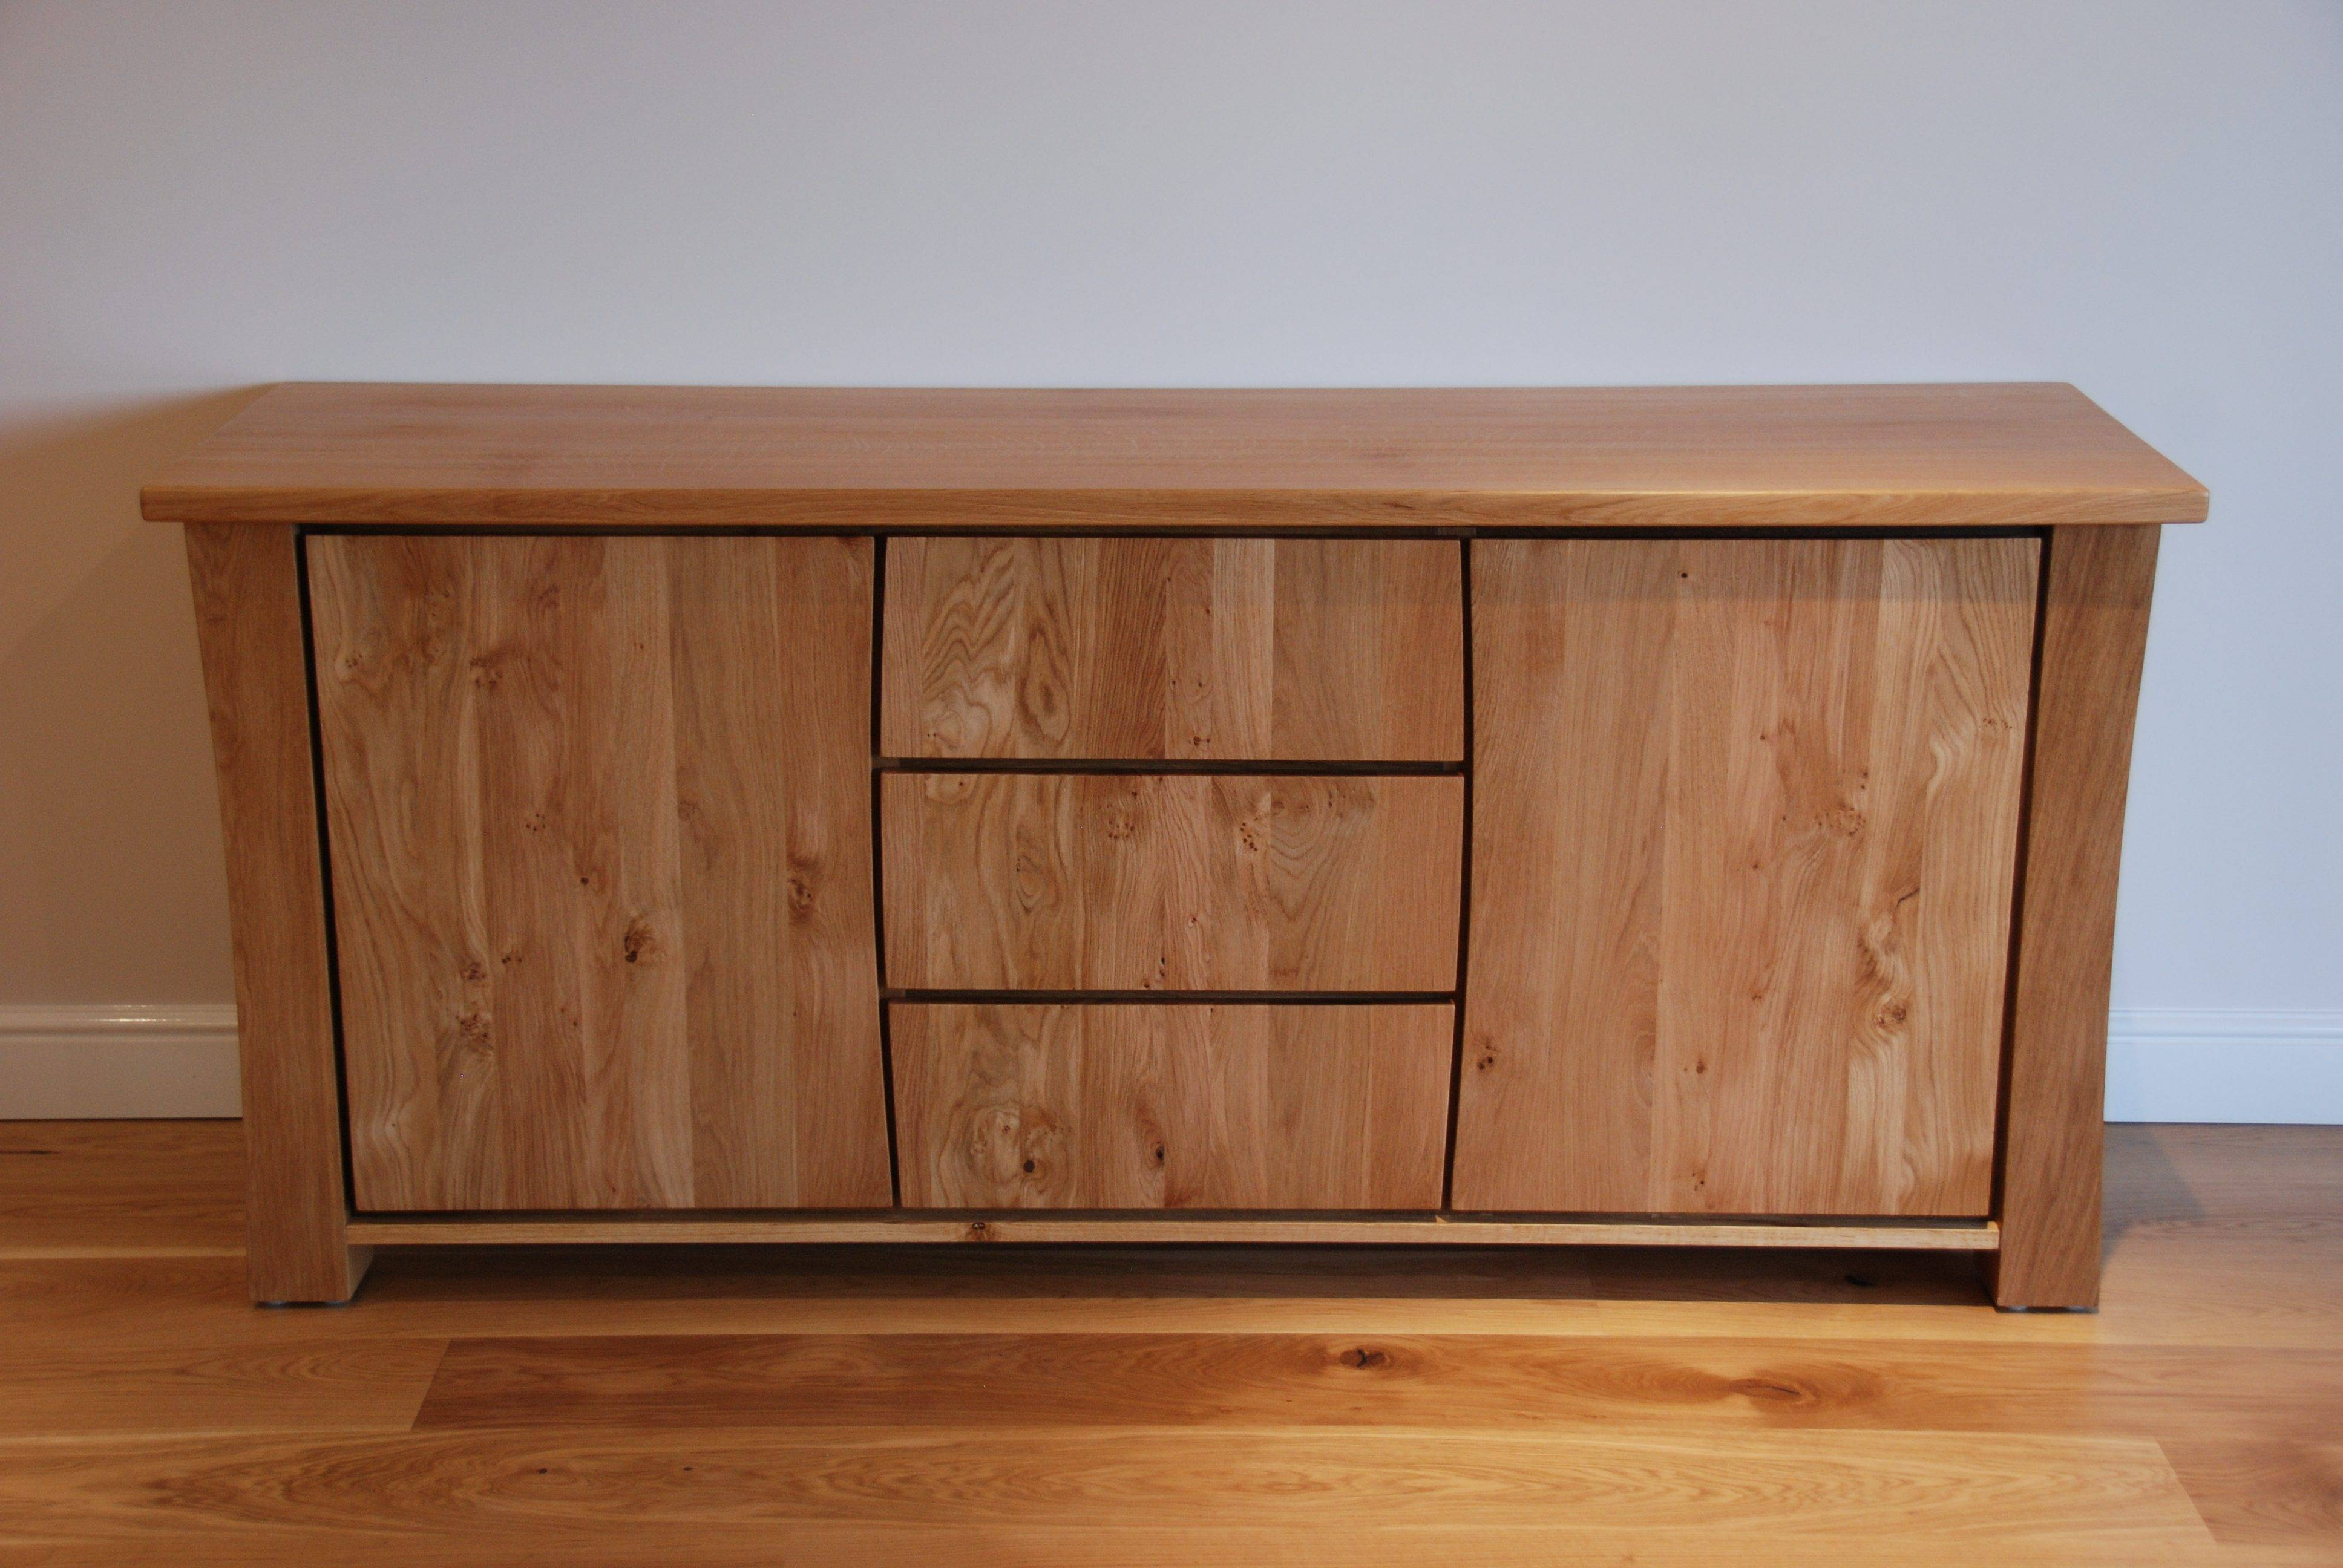 Sideboard And Tv Unit Commission | Bespokegreenoak Pertaining To Sideboard Units (View 4 of 20)